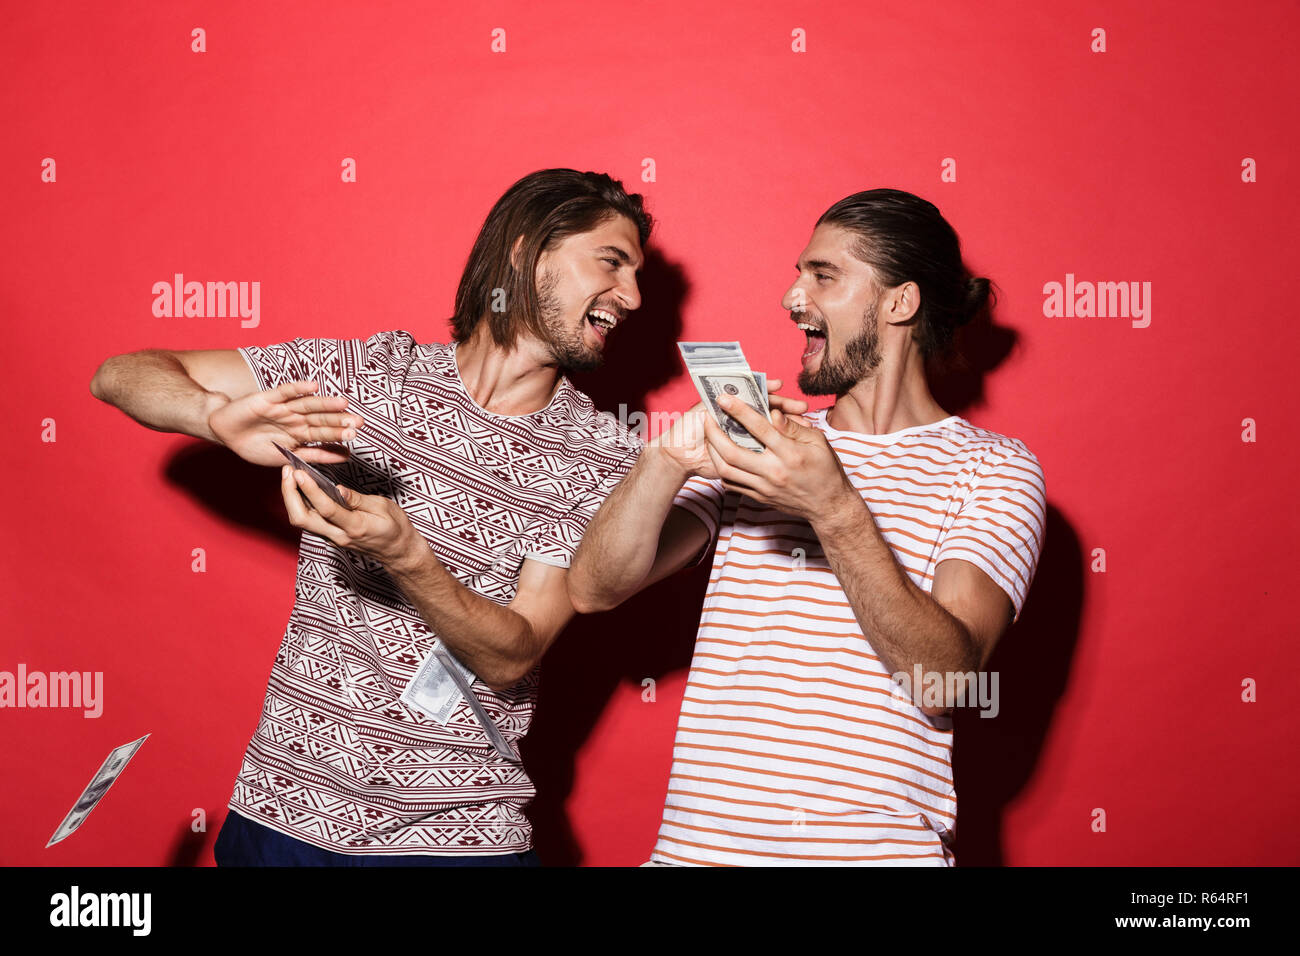 Portrait of a two young cheerful twin brothers isolated over red background, throwing out money banknotes - Stock Image